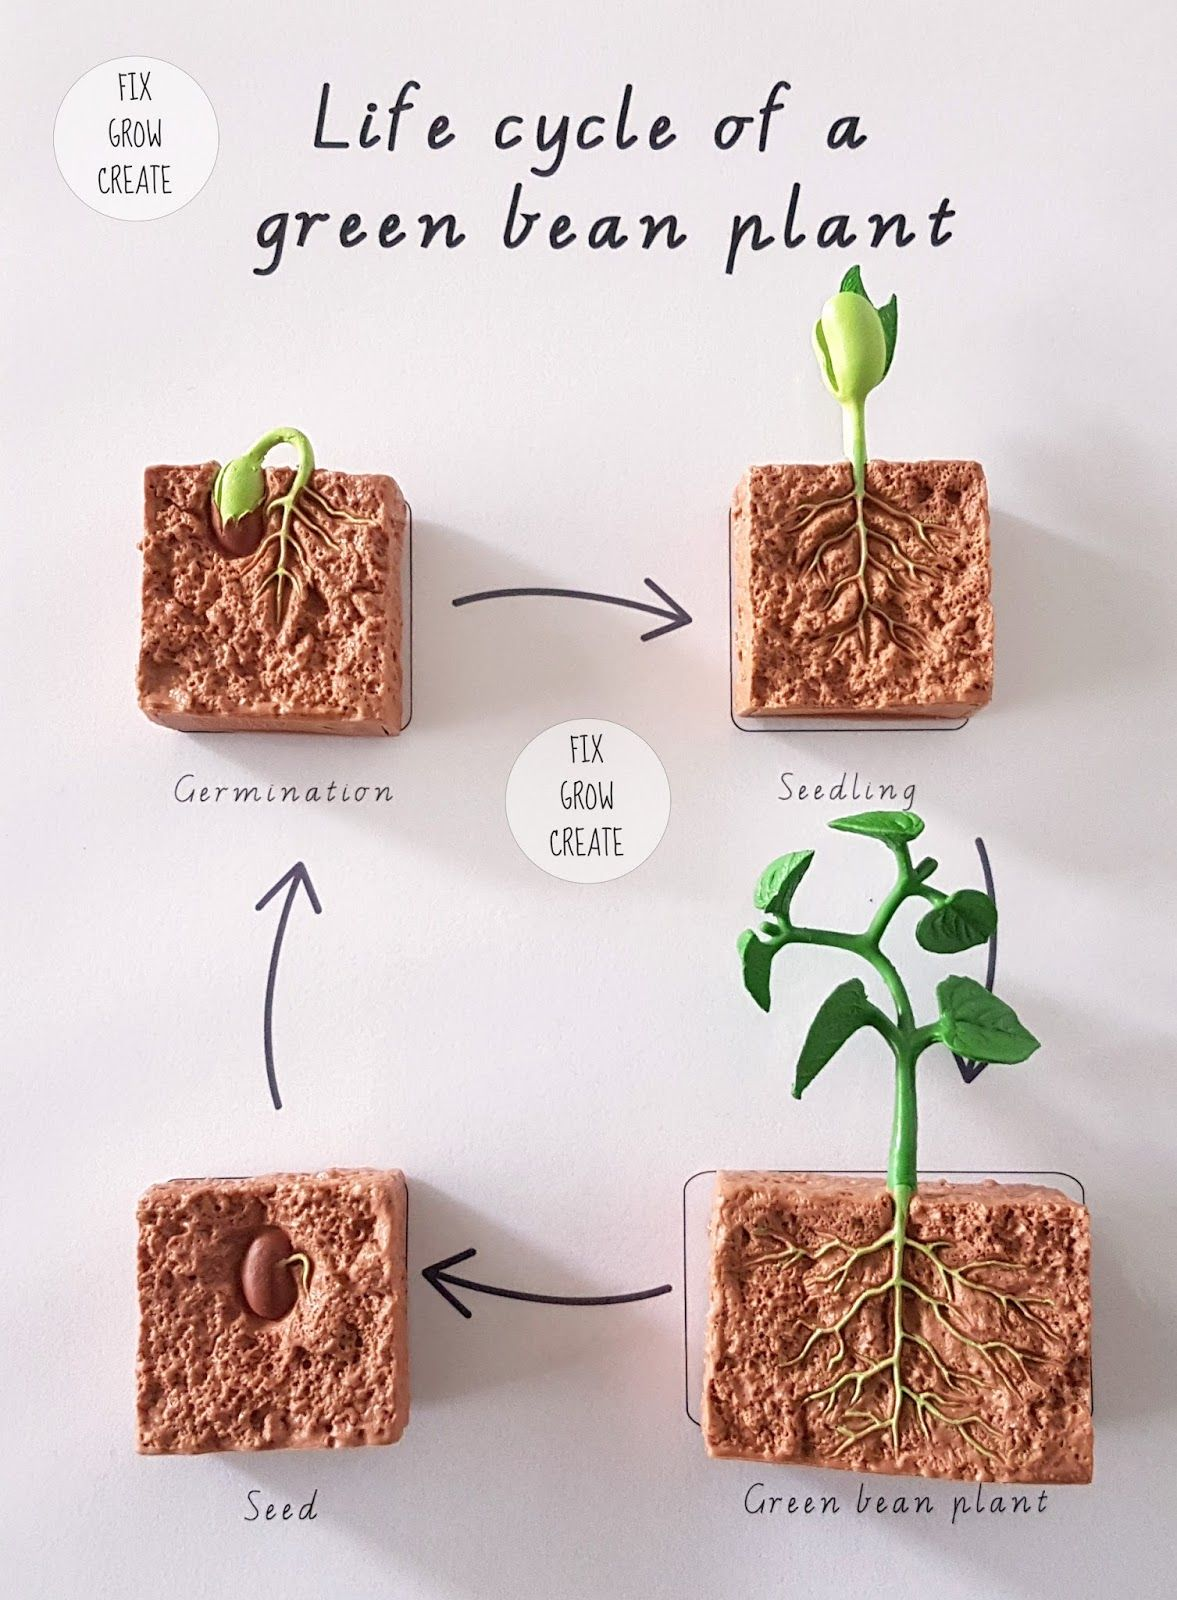 Free Life Cycle Of A Green Bean Plant From Fixoweate